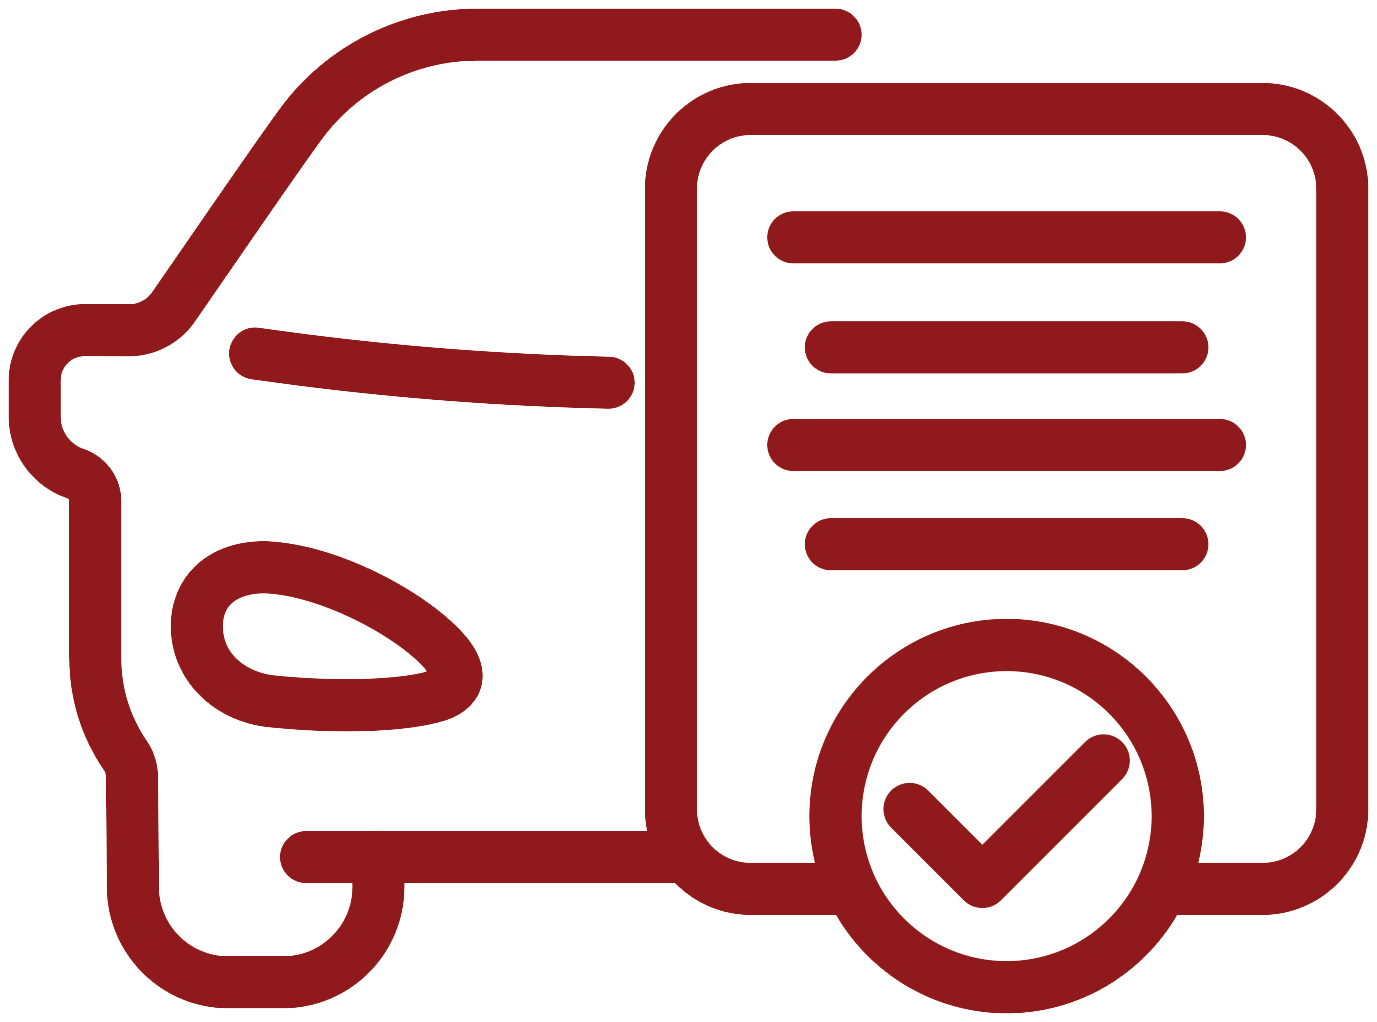 icon of a car with a document and check mark